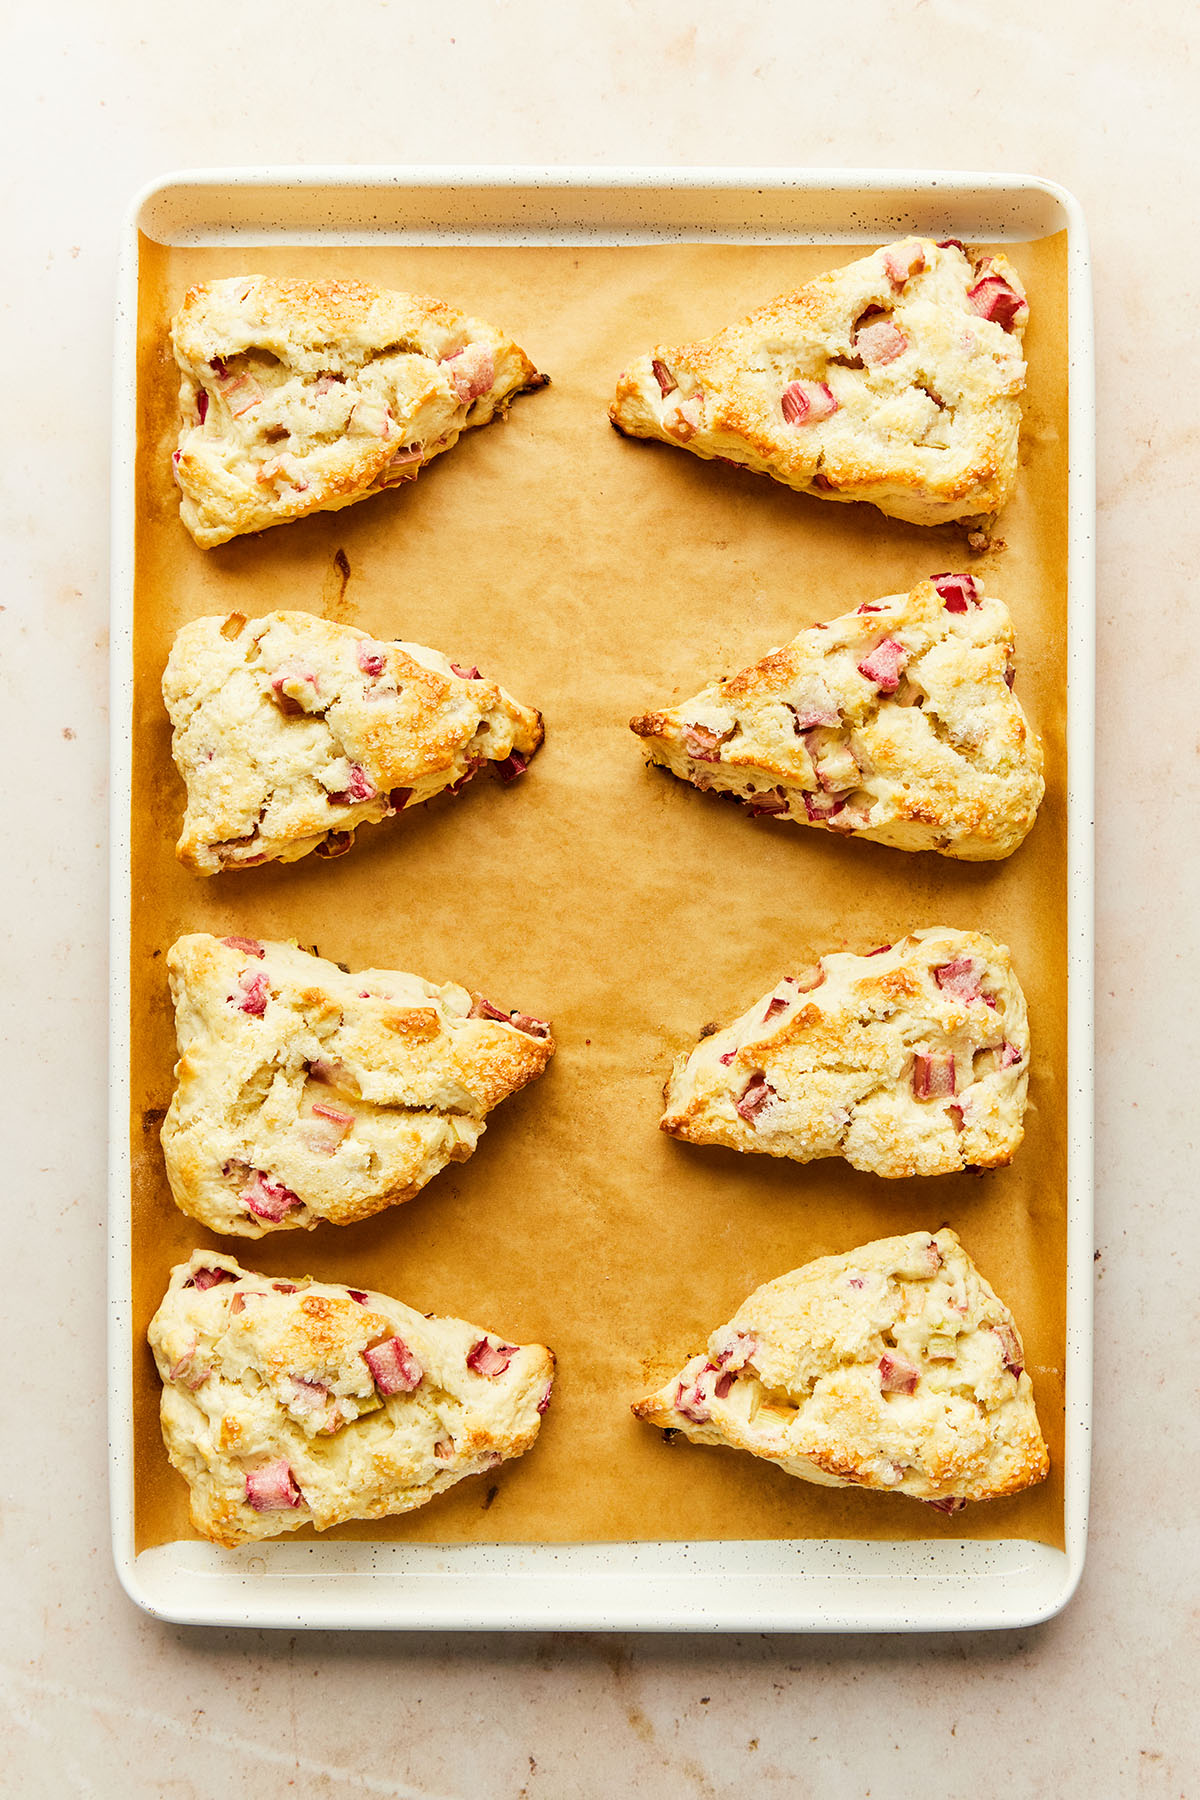 A baking sheet lined with parchment paper topped with eight baked rhubarb scones.